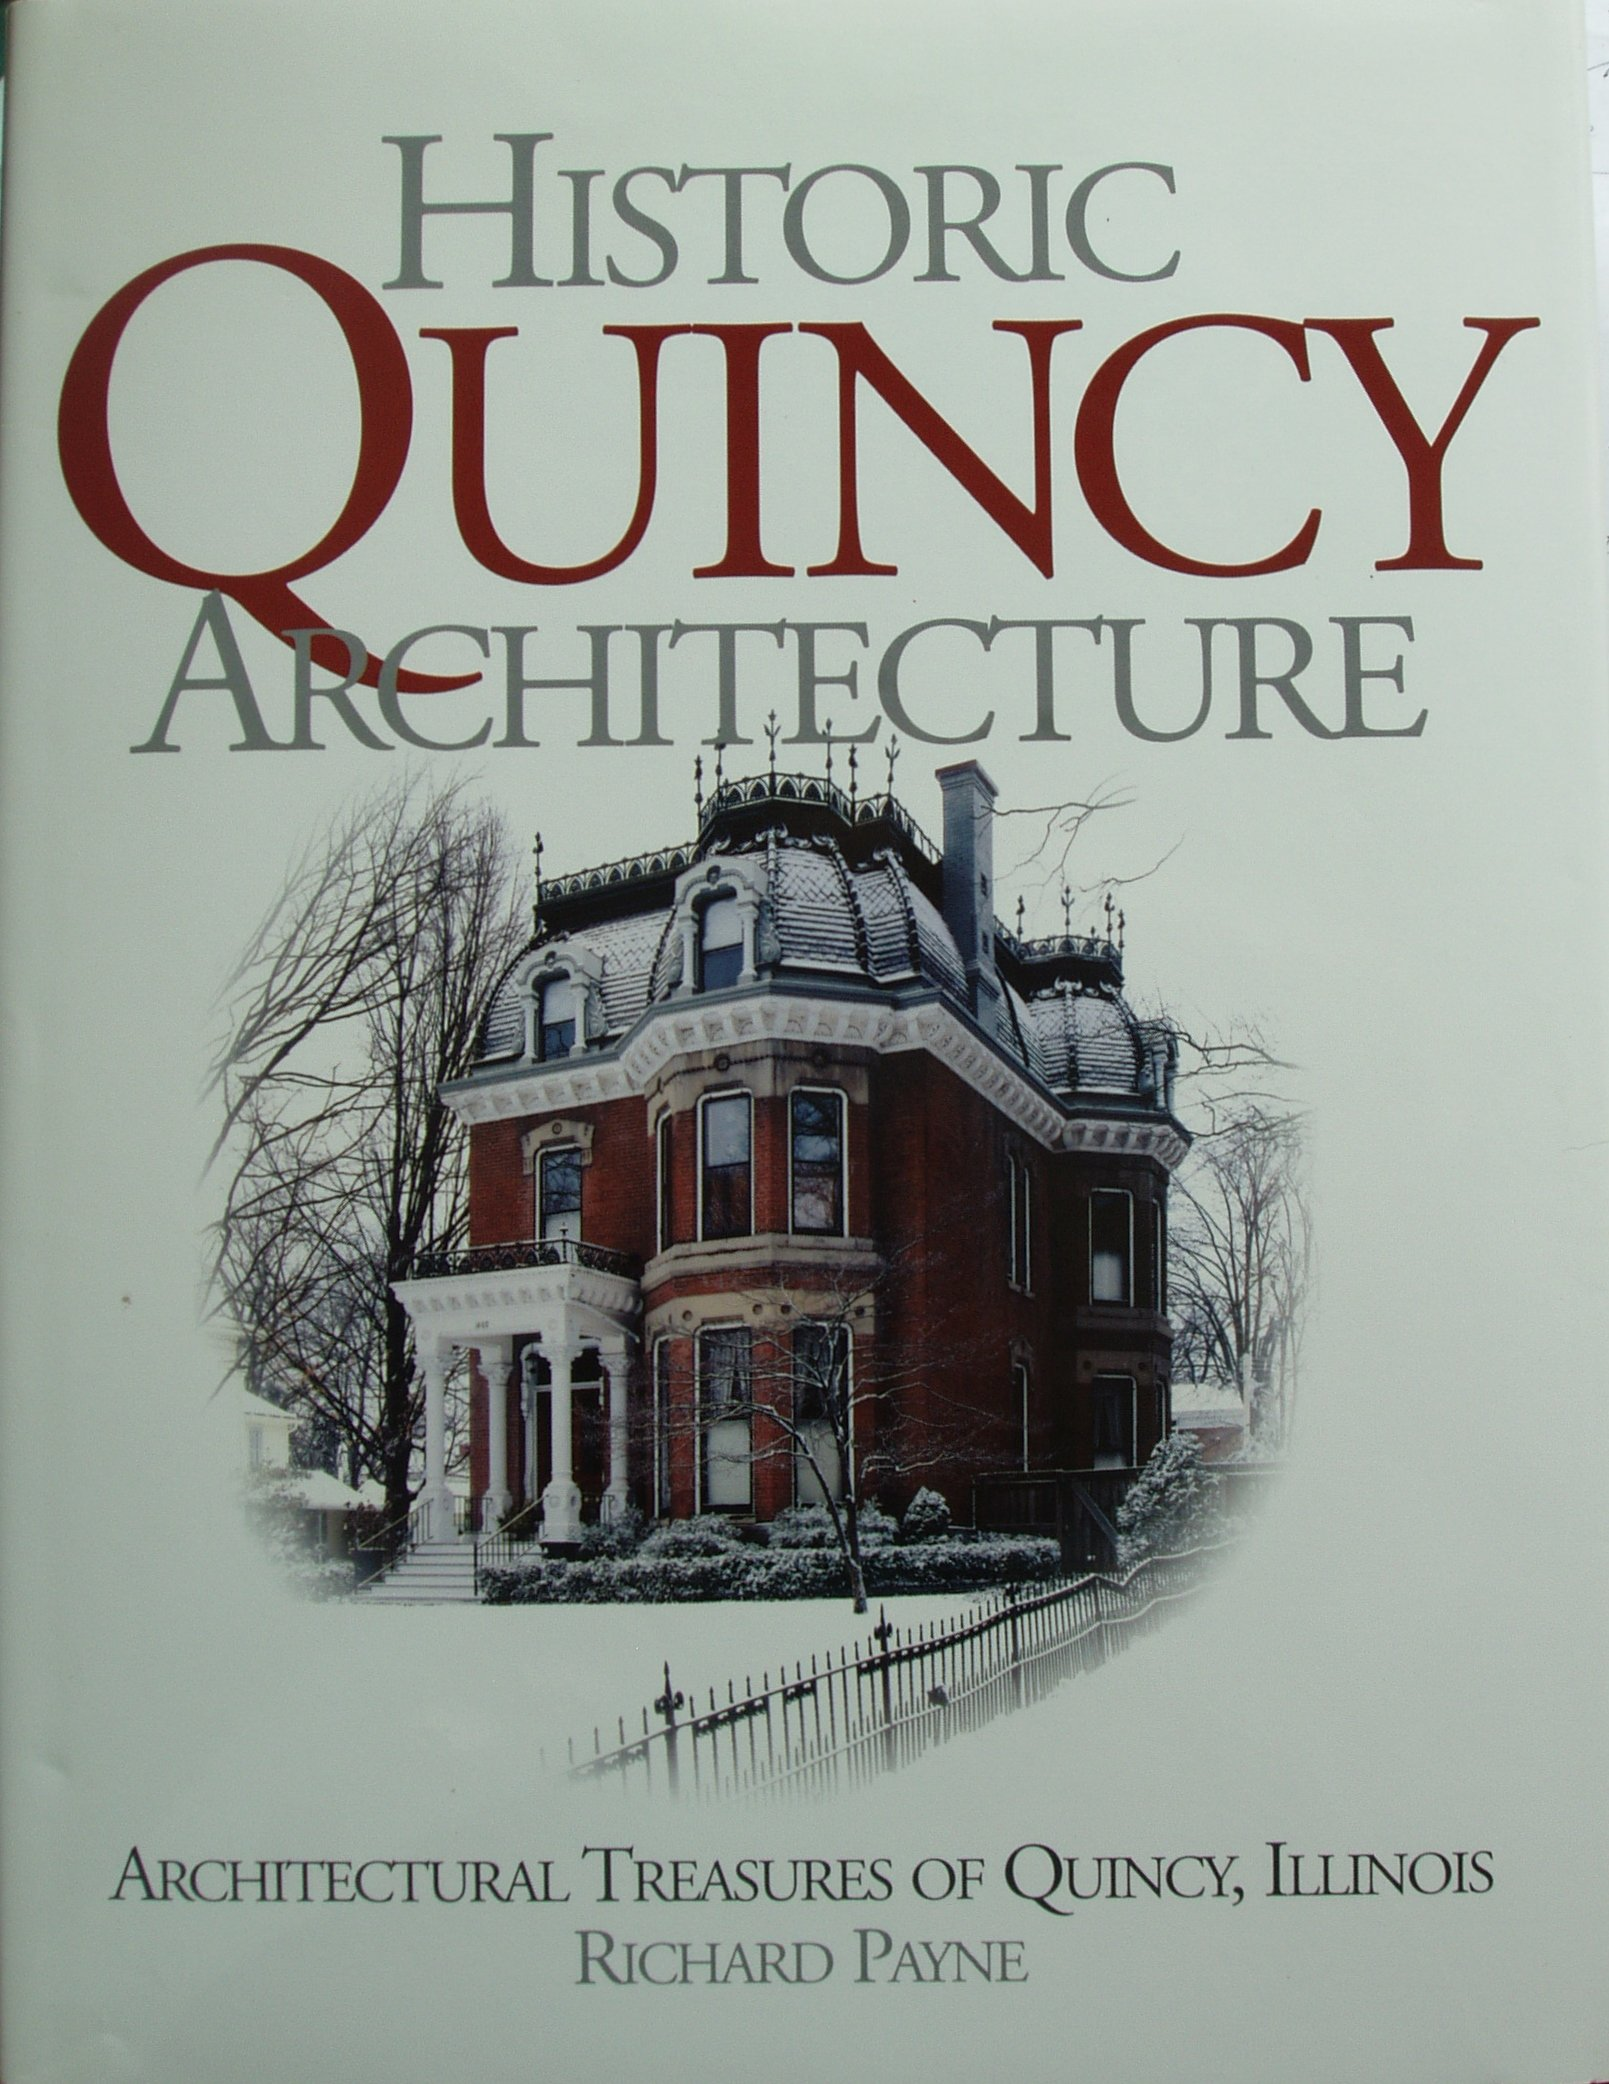 Historic Quincy Architecture Architectural Treasures of